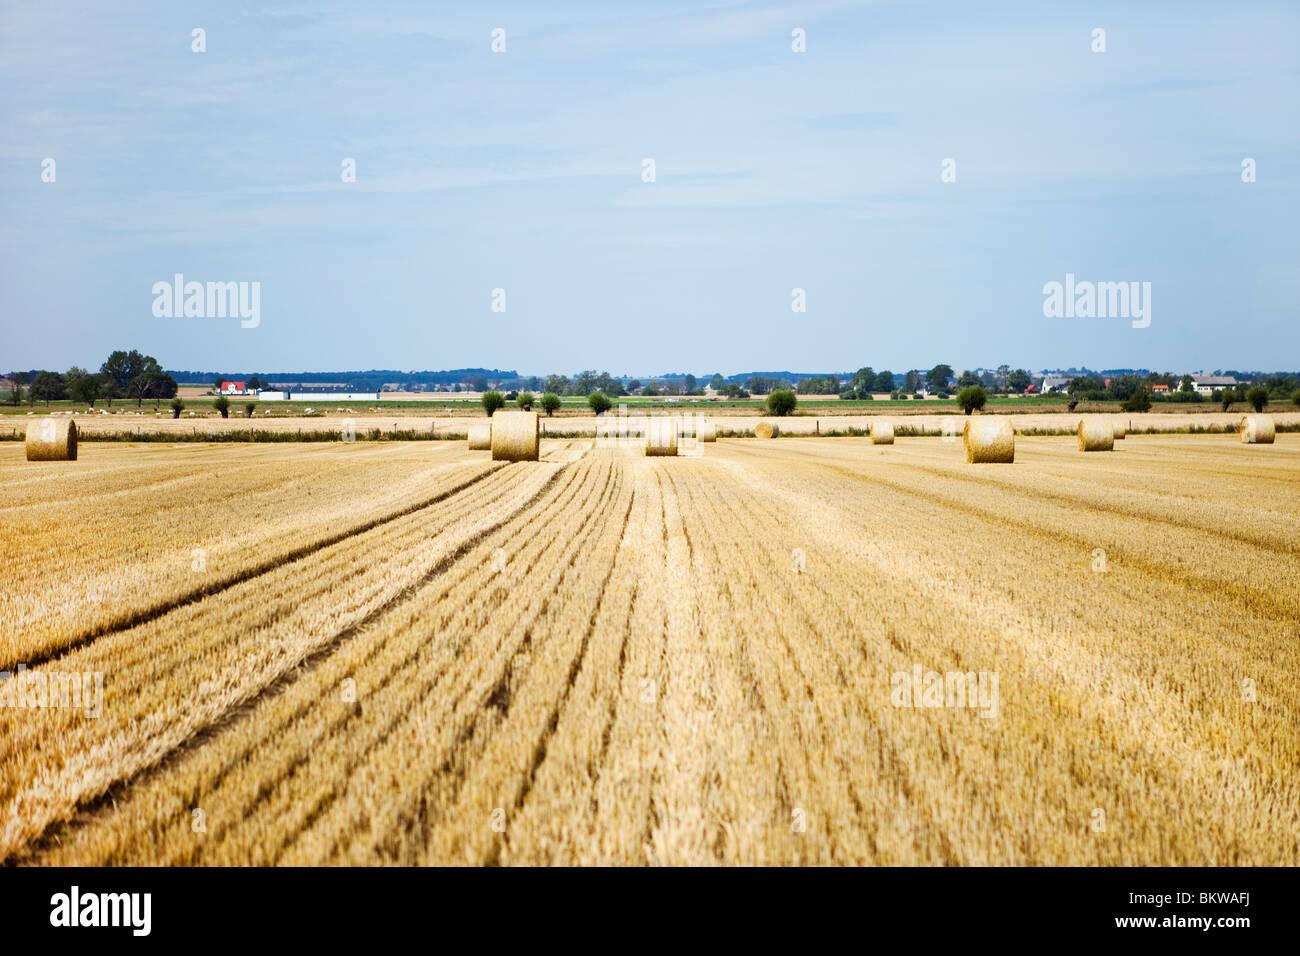 View over field - Stock Image